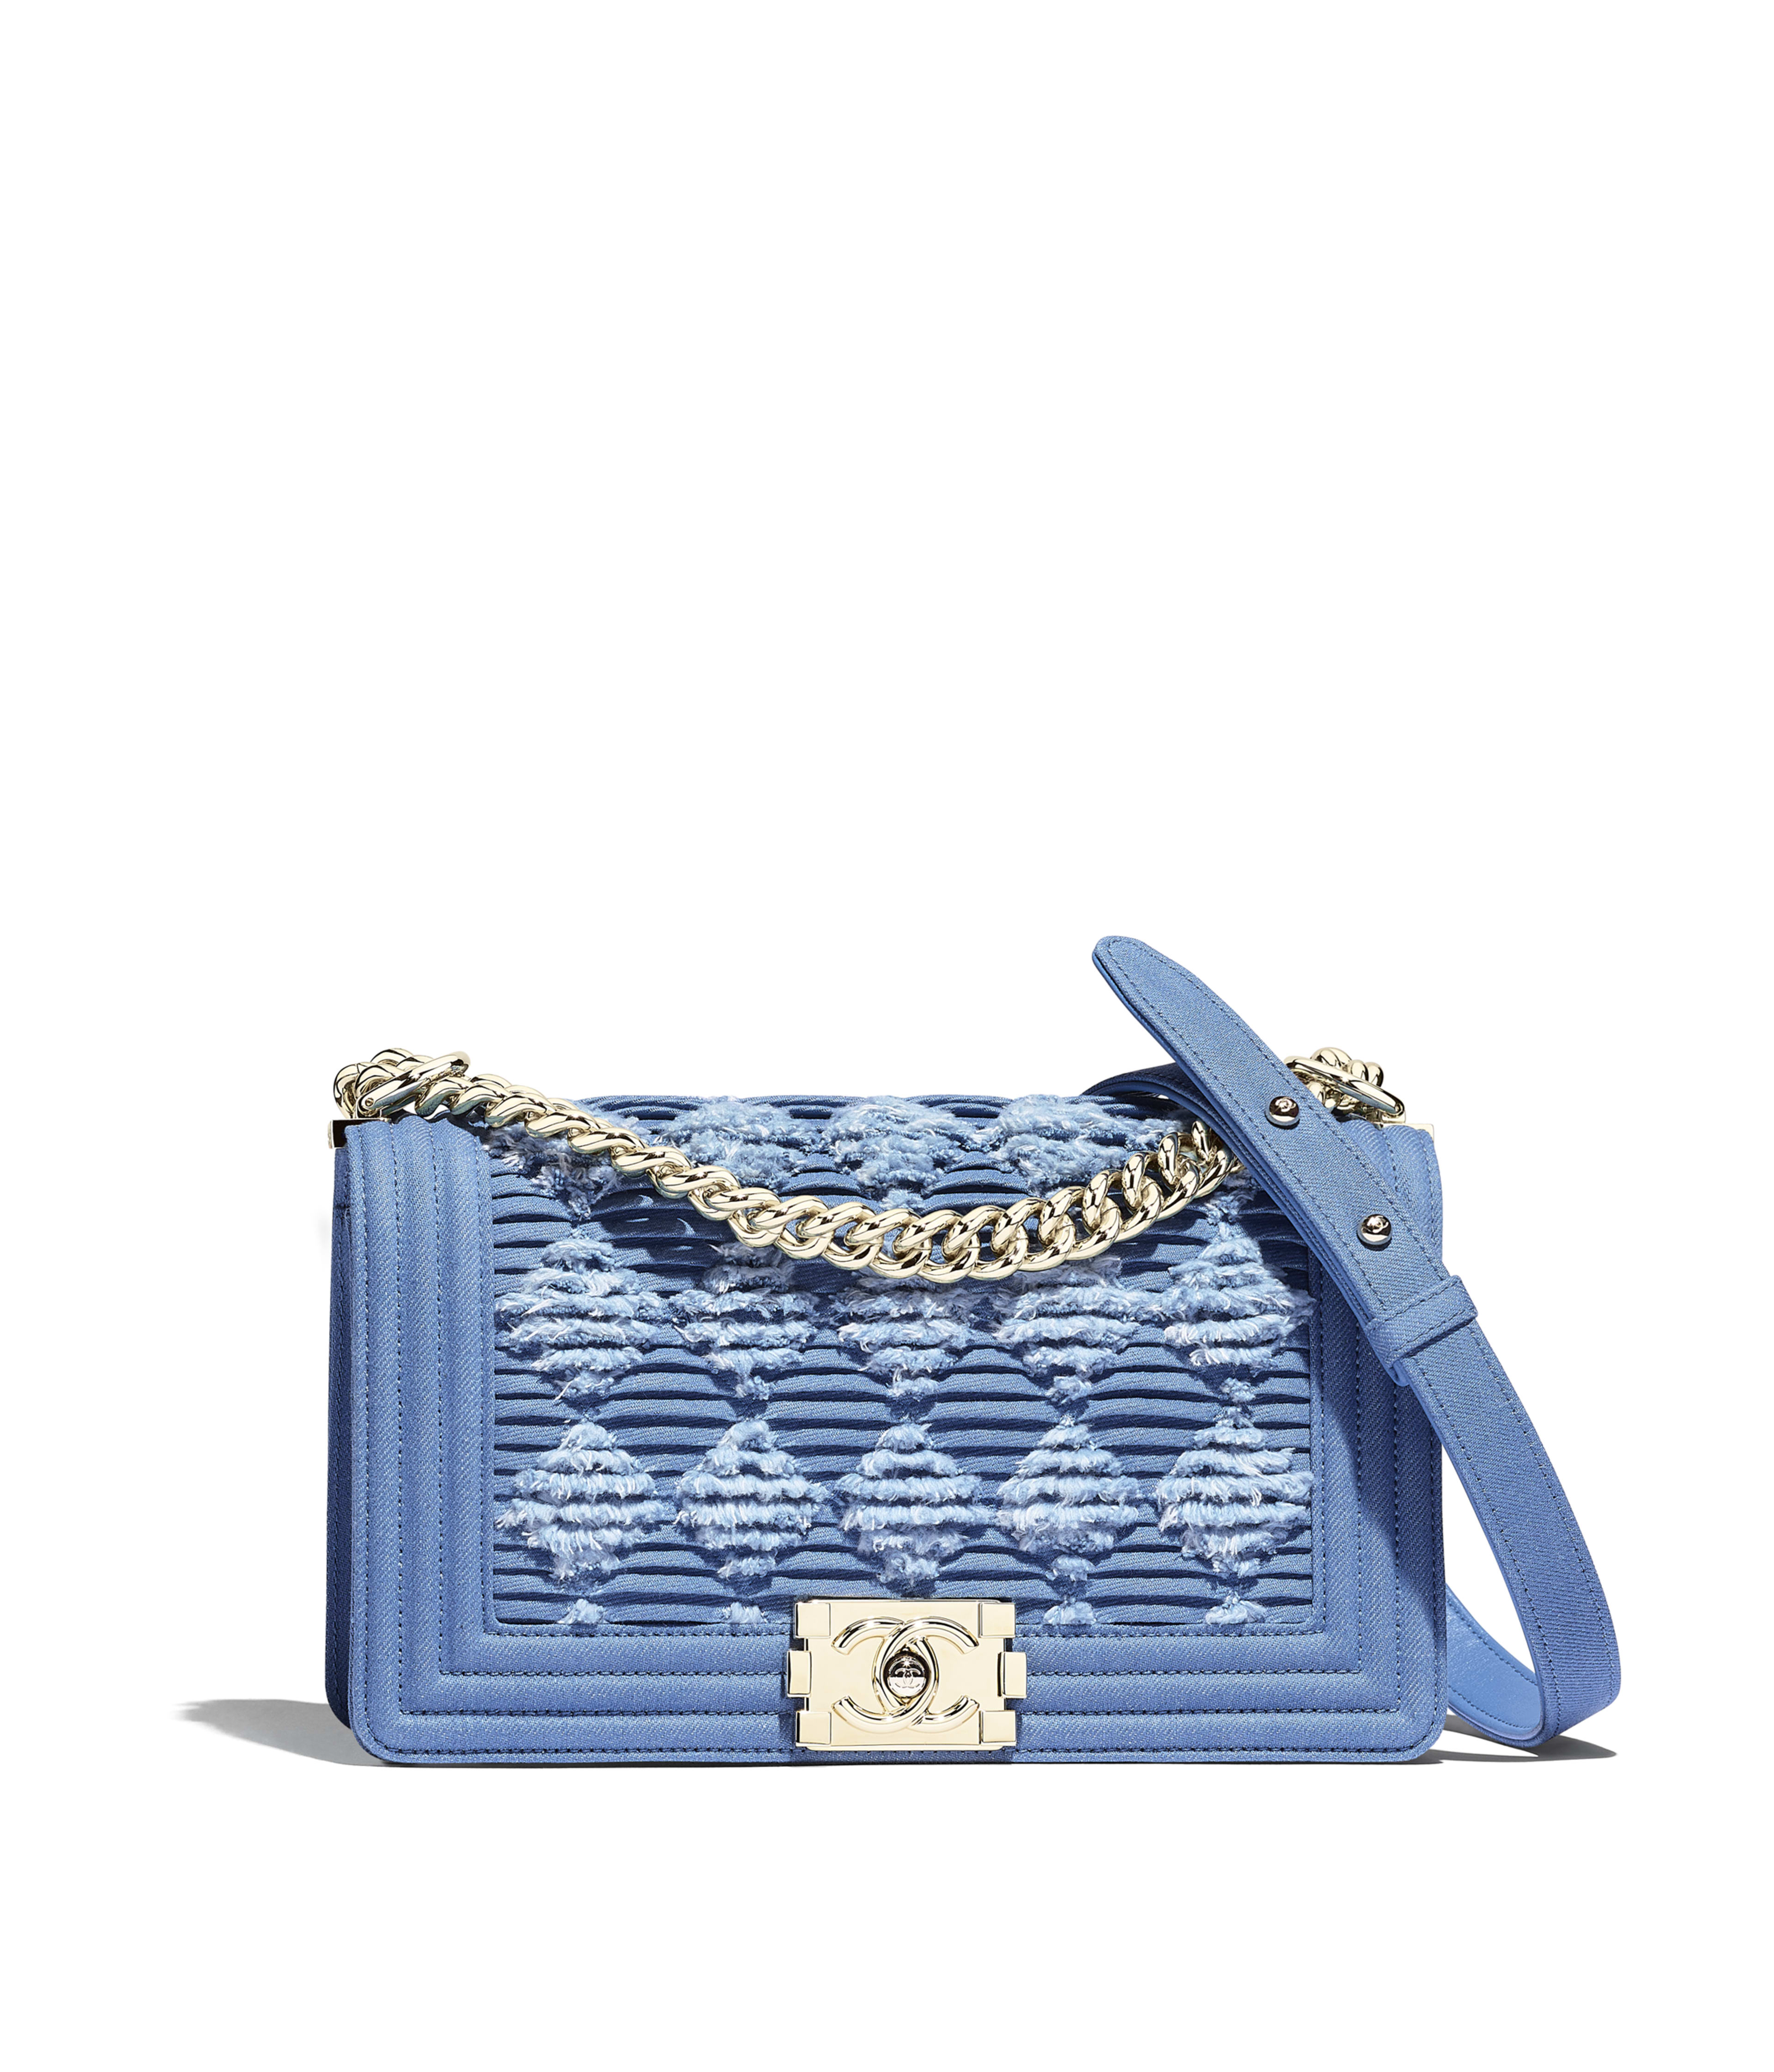 504d772a9247 BOY CHANEL Handbag Pleated Denim & Gold-Tone Metal, Light Blue Ref.  A67086B00300N4418